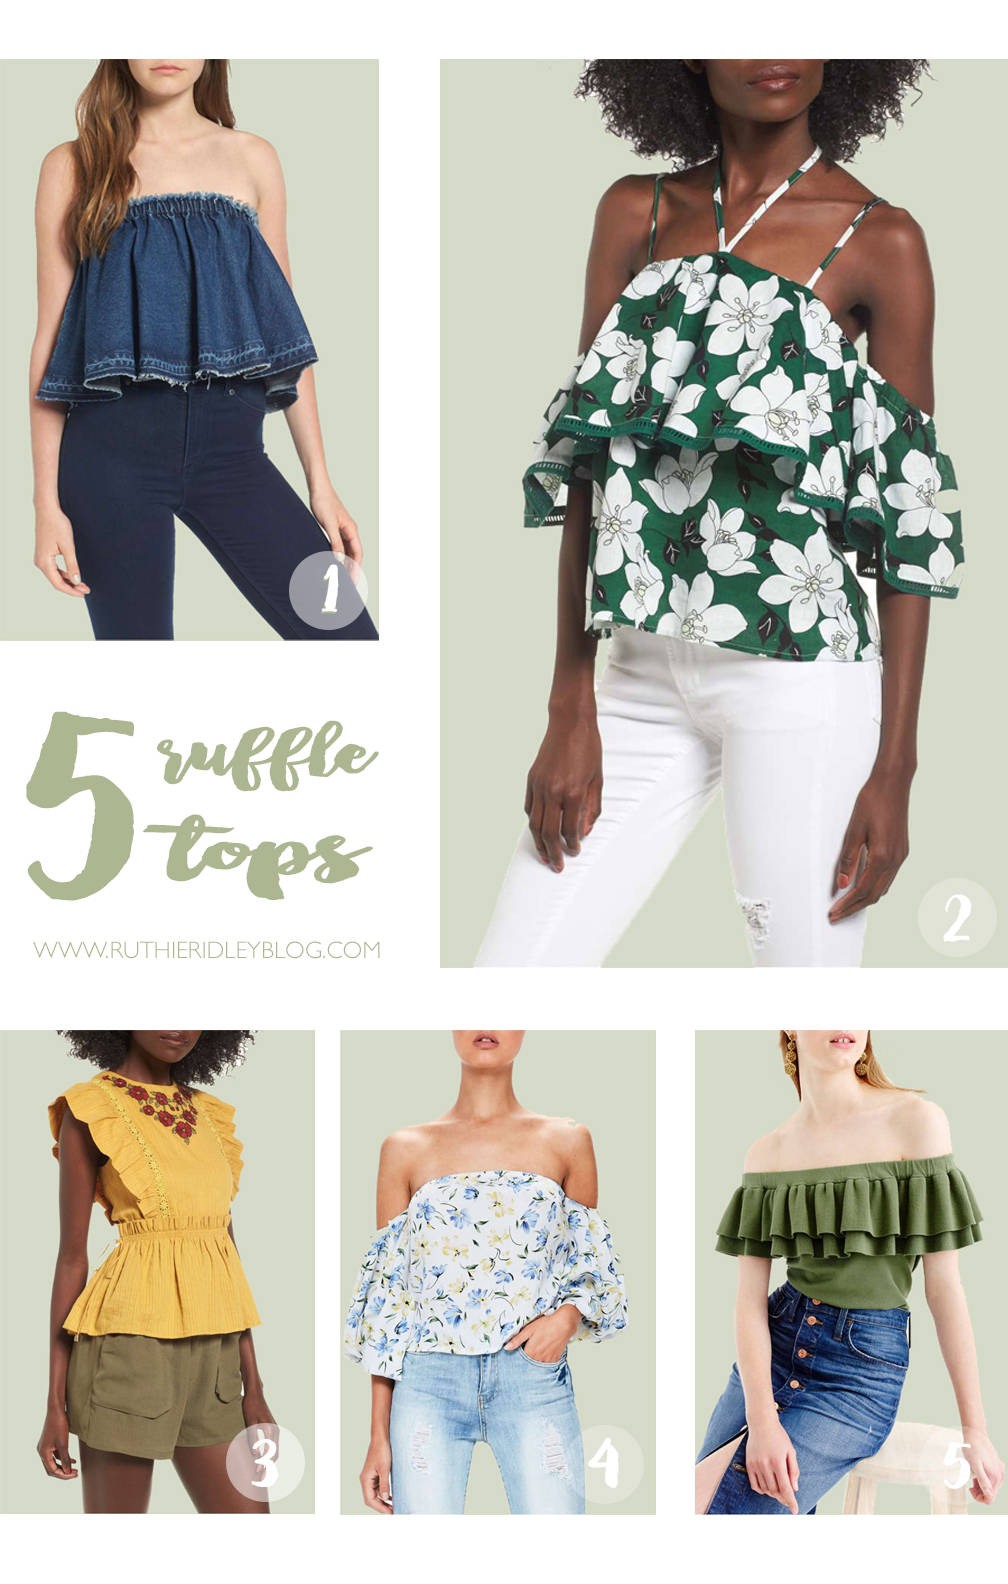 Adding a little, ruffle, color or studs to any top or denim, will make a statement! Check out my favorite tops and denim skirts!!